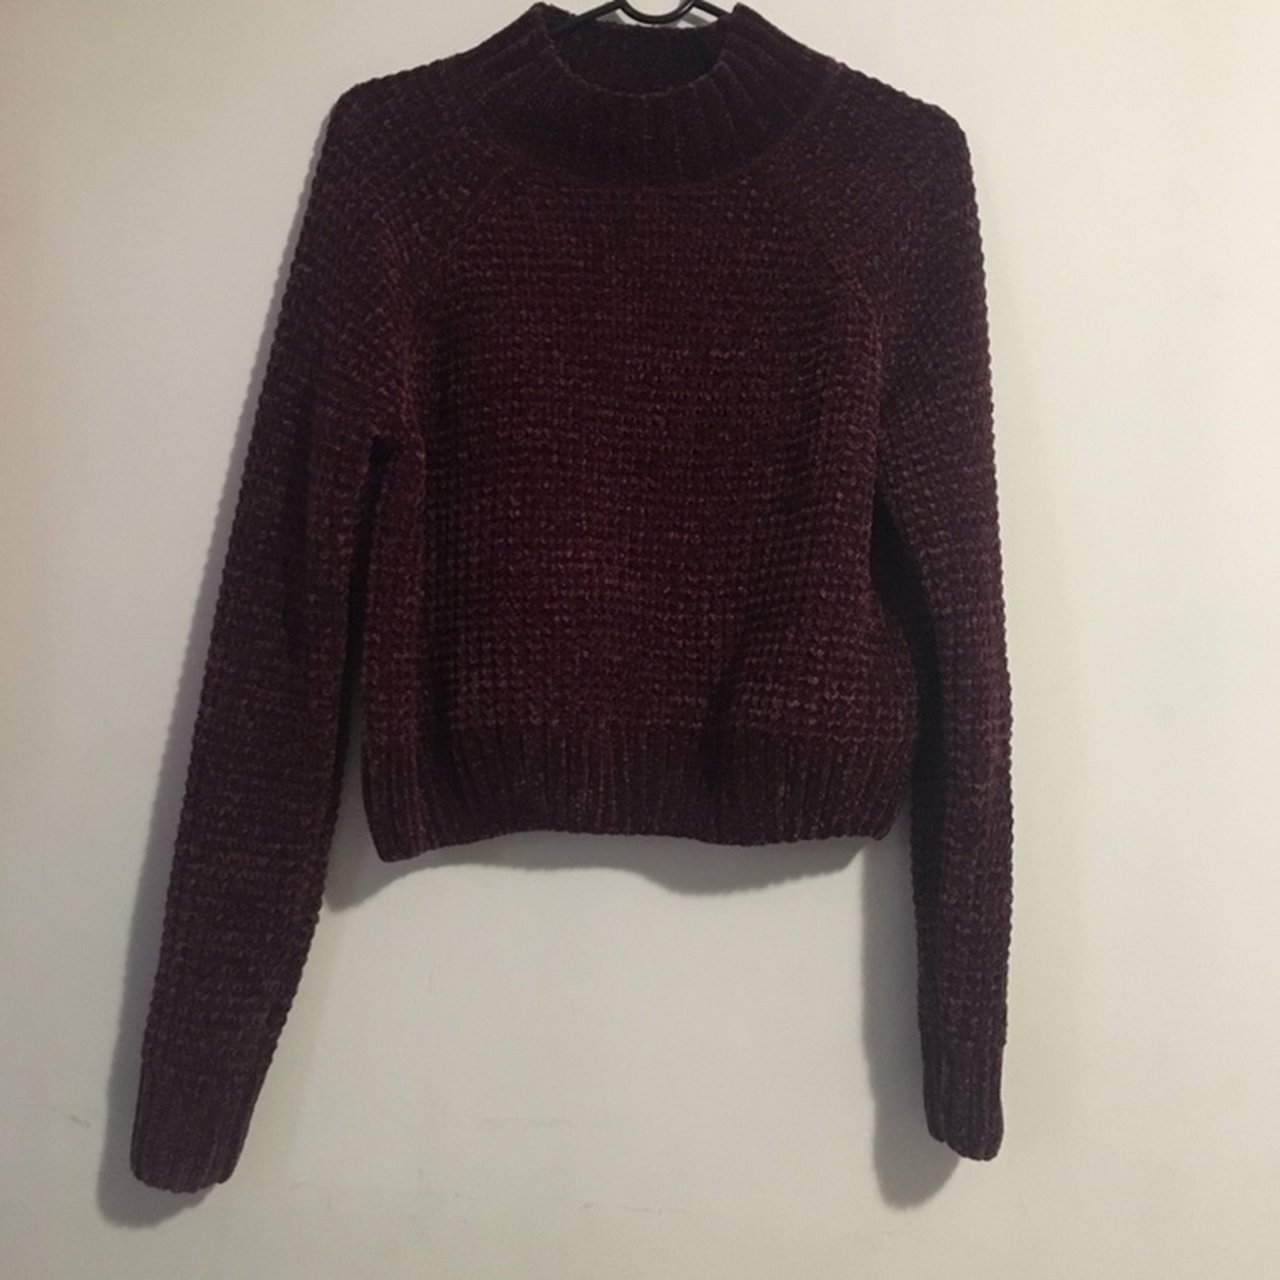 Burgundy cropped cable knit sweater from H M Super soft and - Depop 1a3fb5787